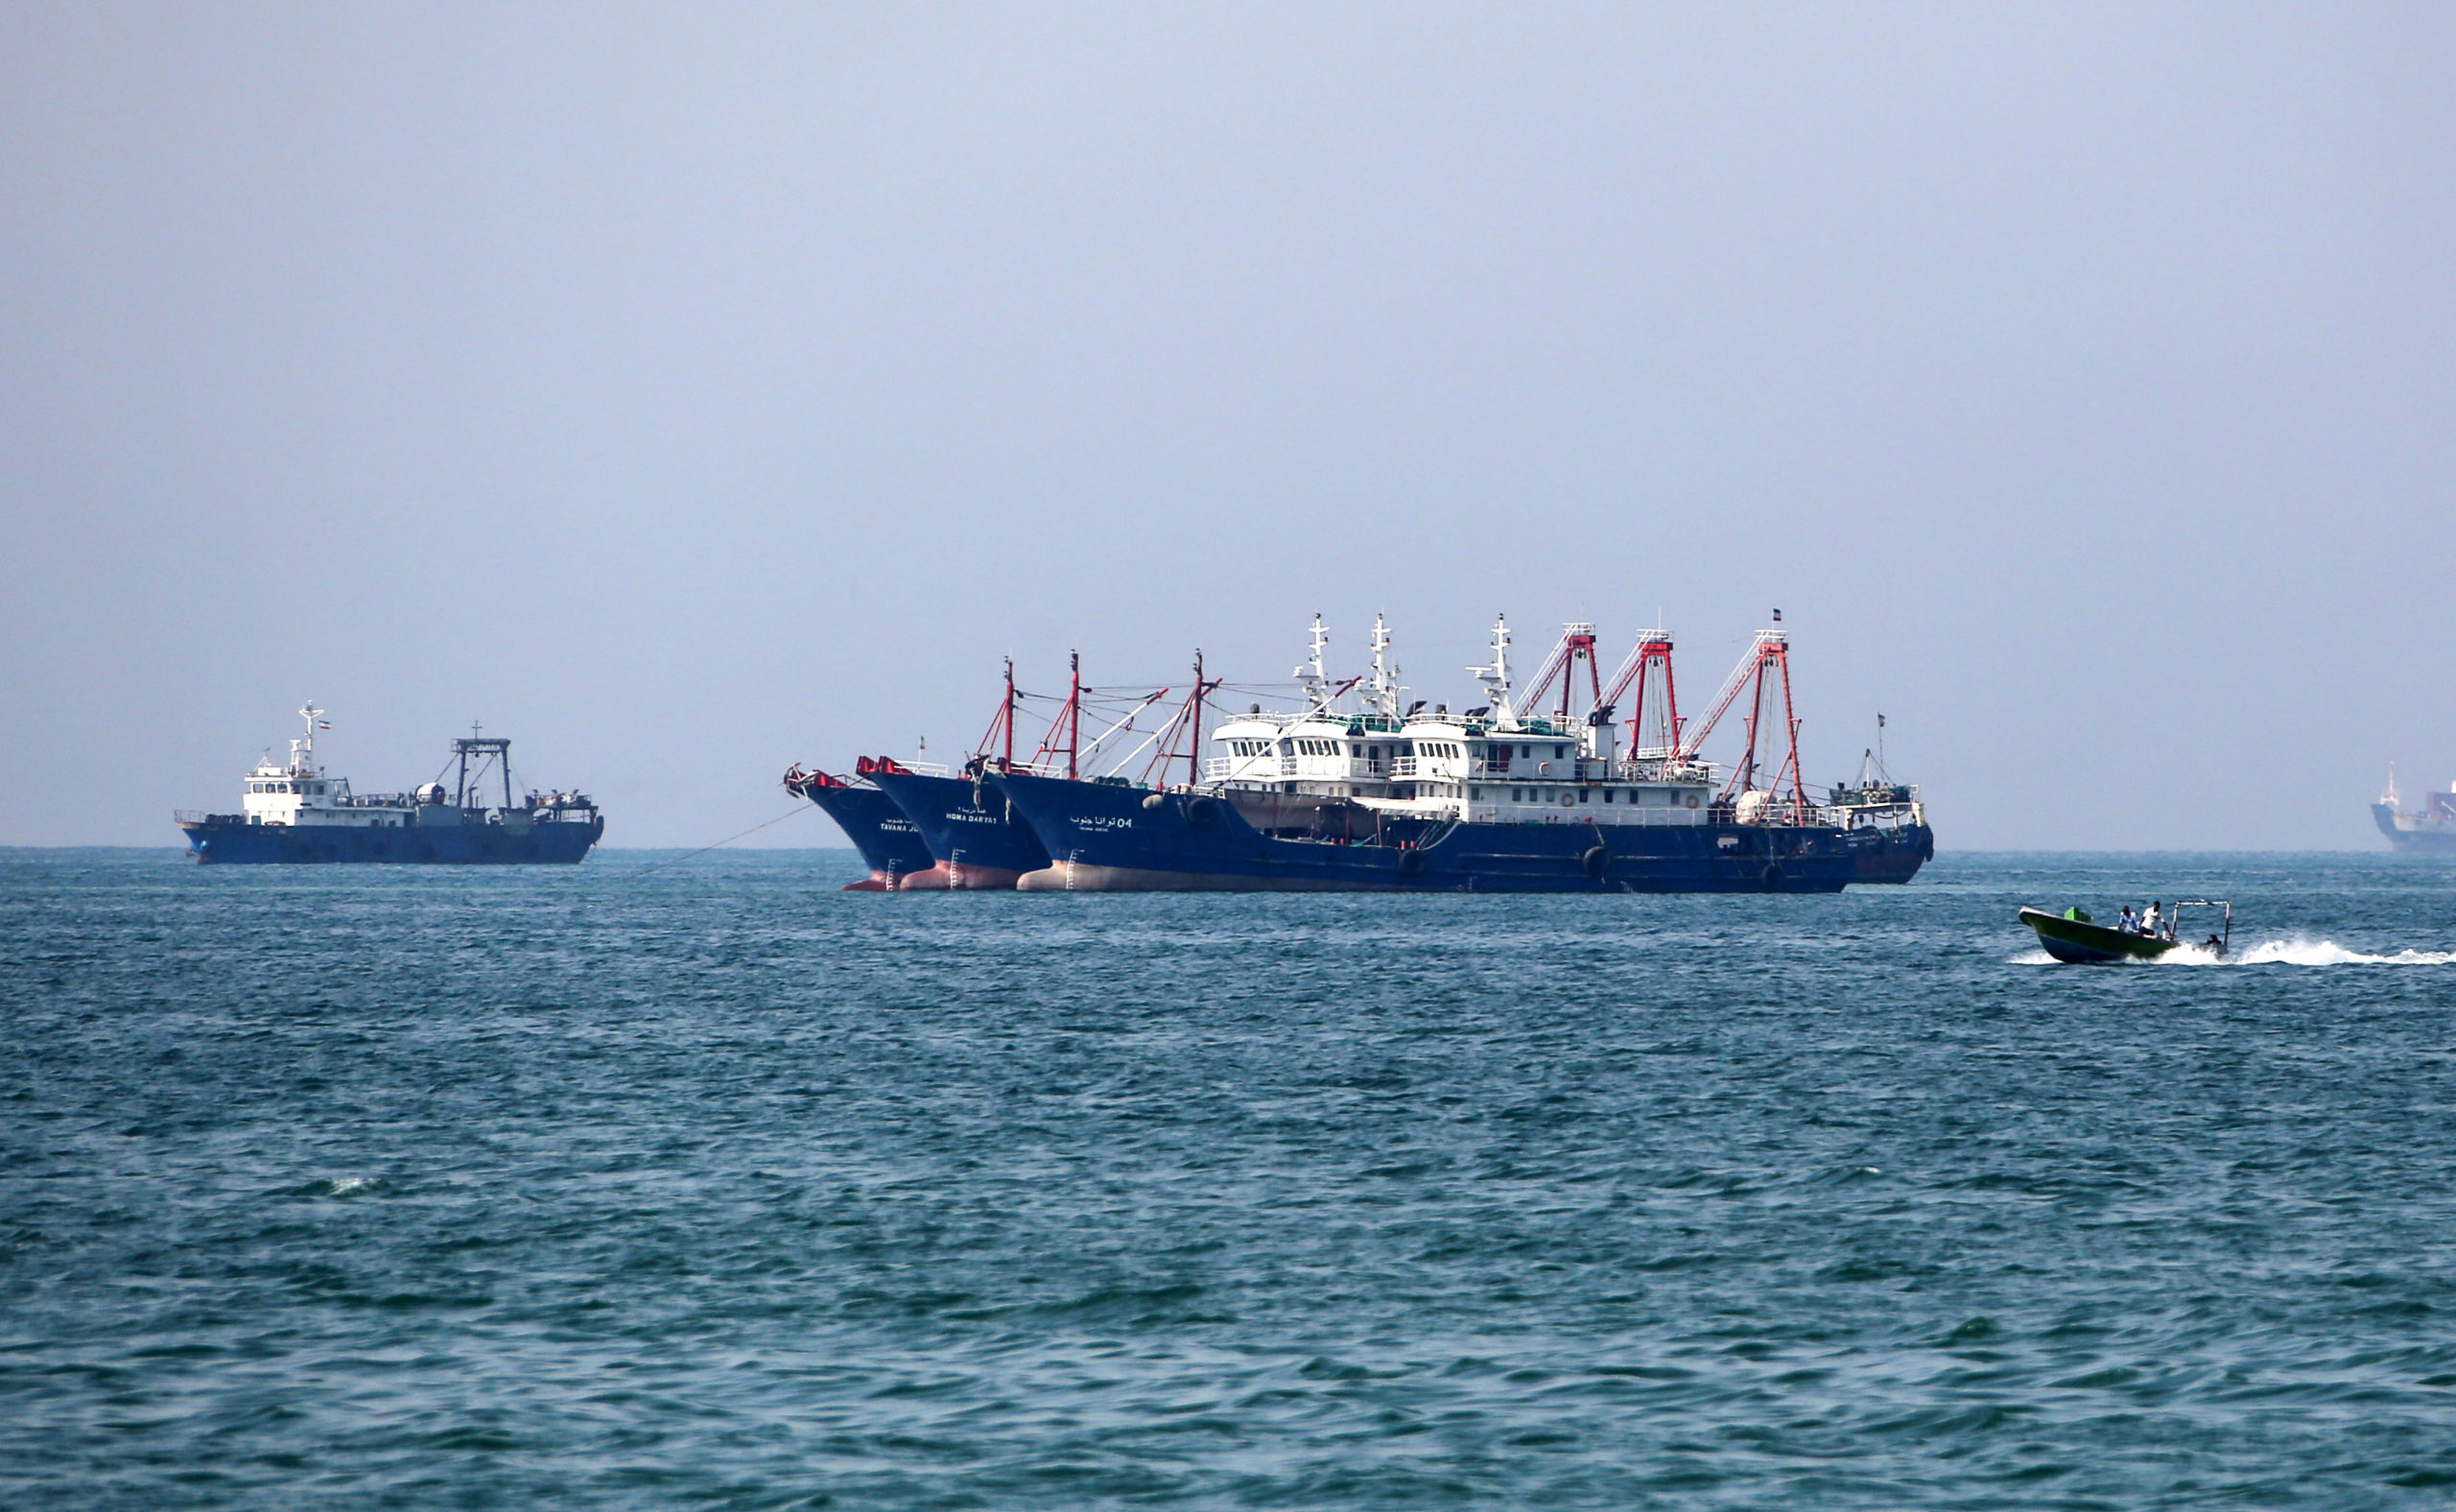 Fishing ships are pictured in the Gulf off the Iranian port city of Bandar Abbas, which is the main base of the Islamic republic's navy and has a strategic position on the Strait of Hormuz, on April 29, 2019. (Photo by ATTA KENARE/AFP via Getty Images)